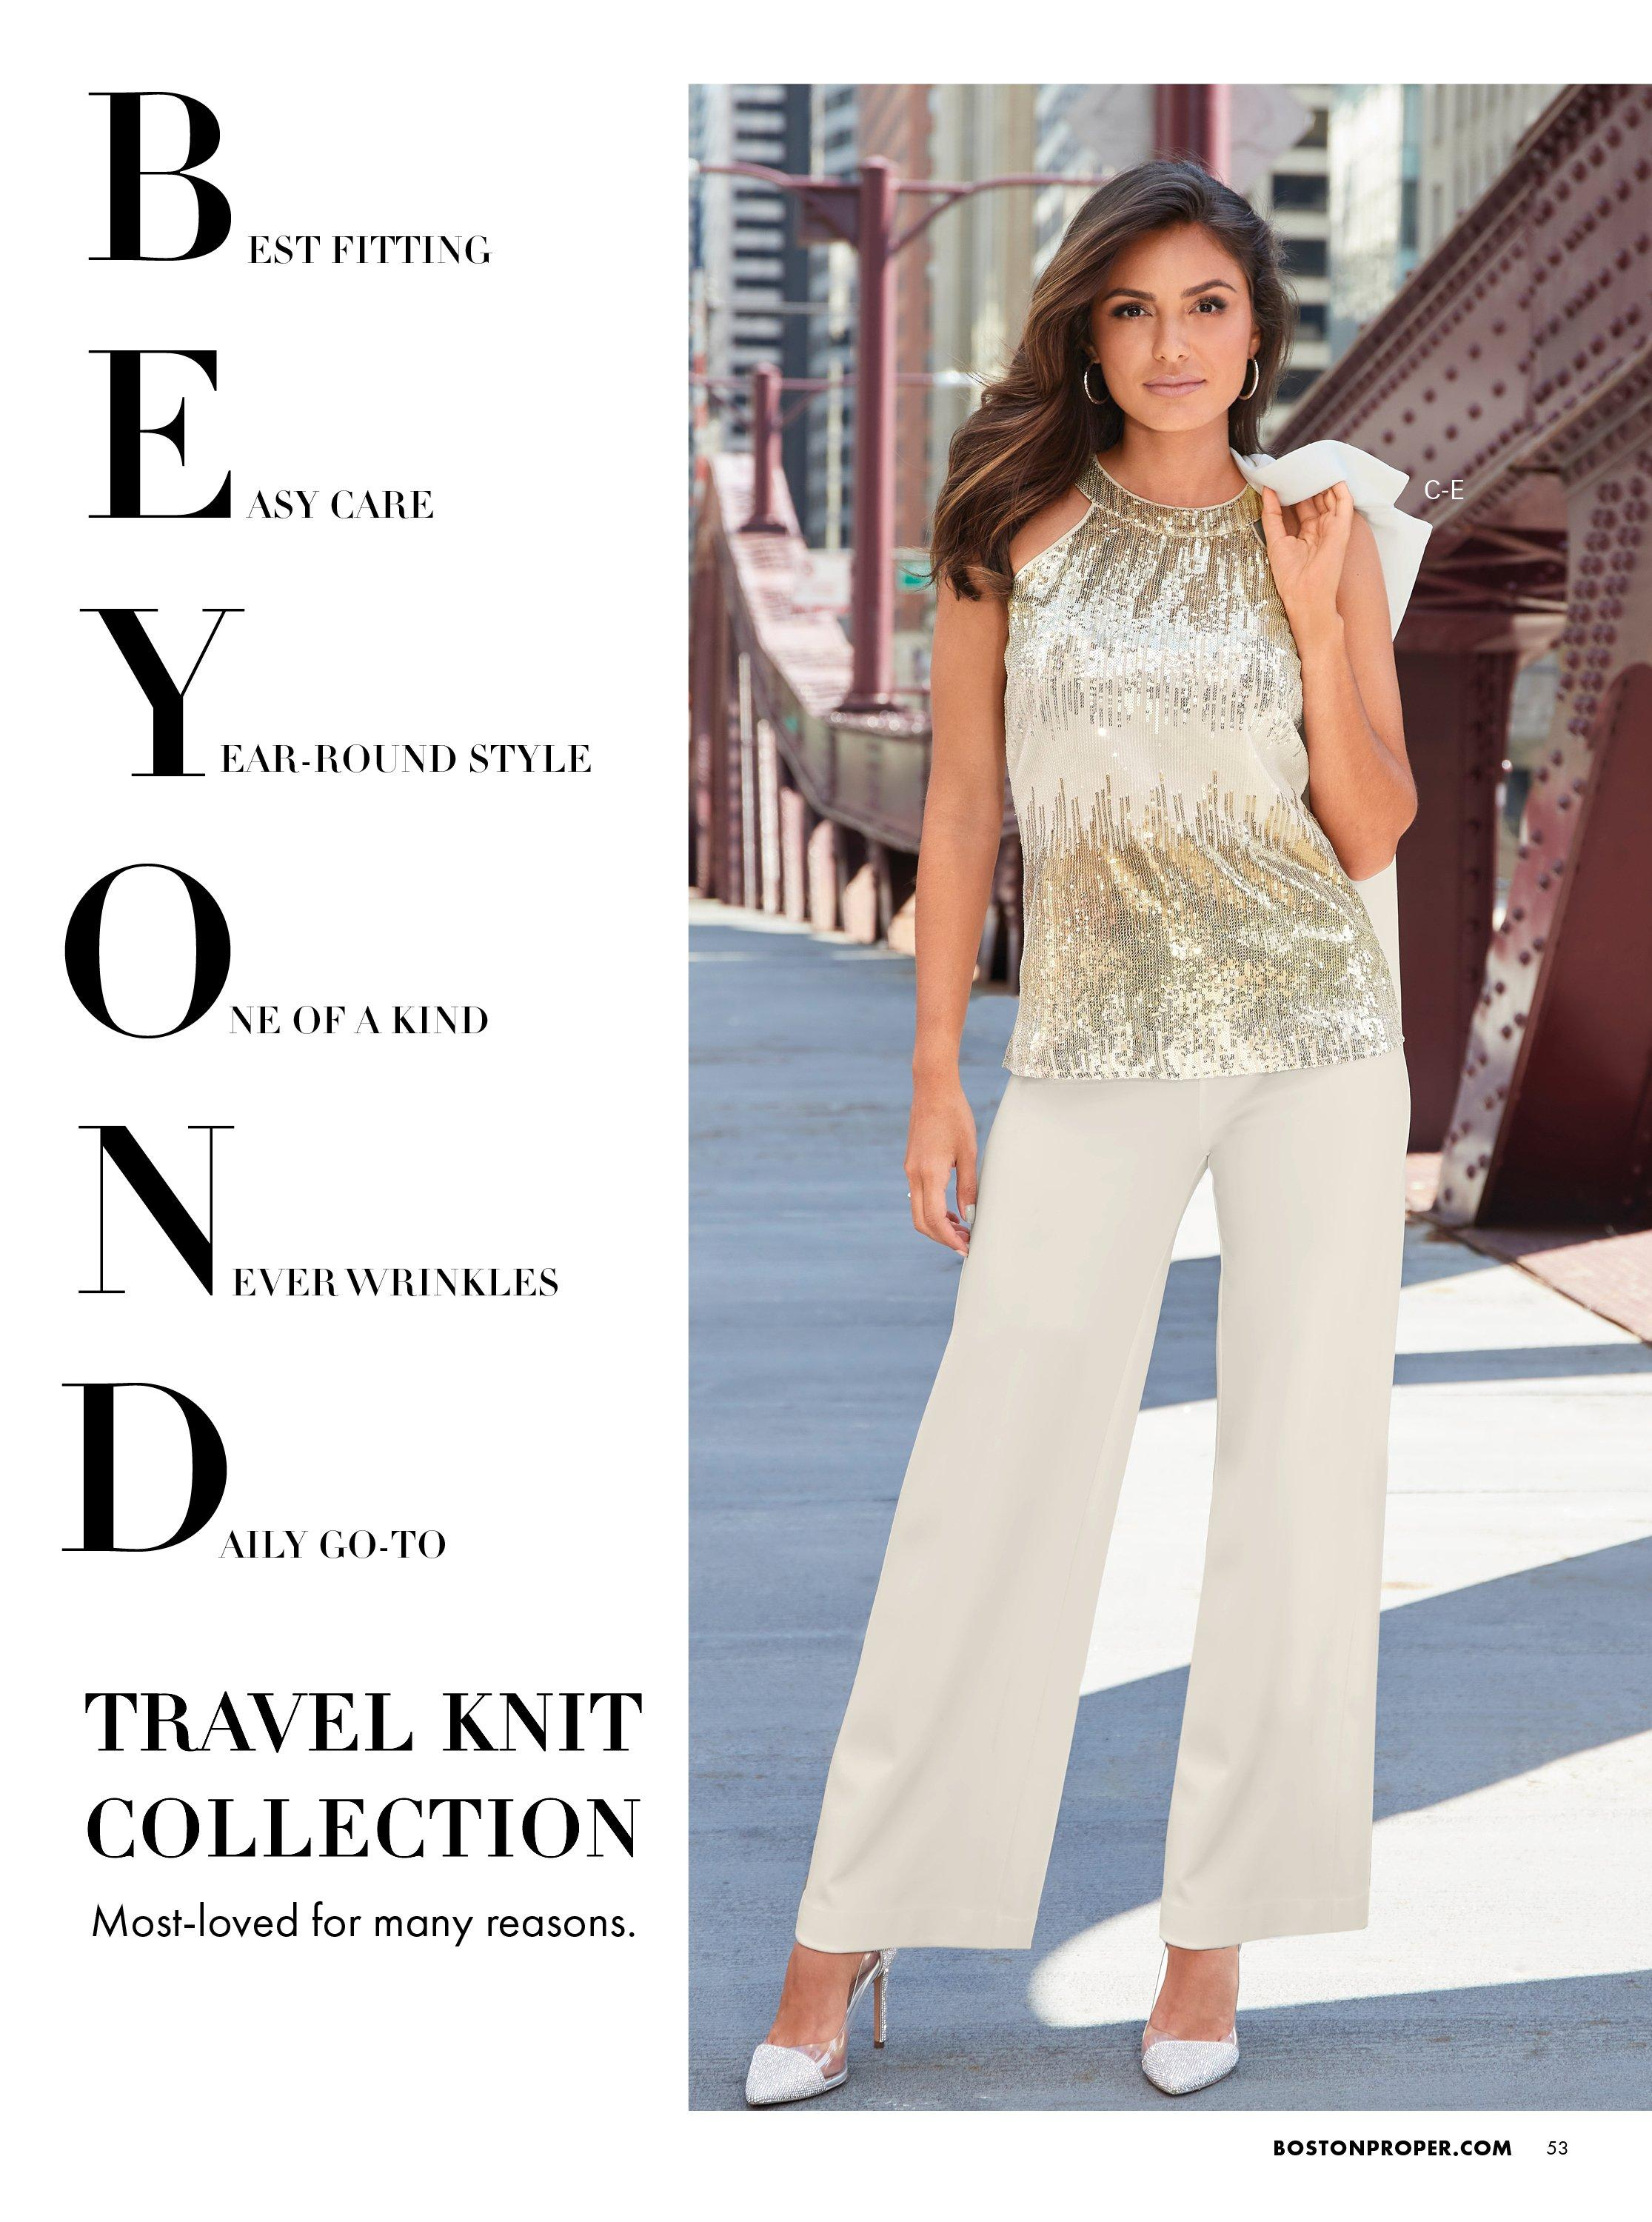 Model wearing a gold and silver sequin embellished sleeveless top, off-white palazzo pants, and silver rhinestone vinyl pumps.